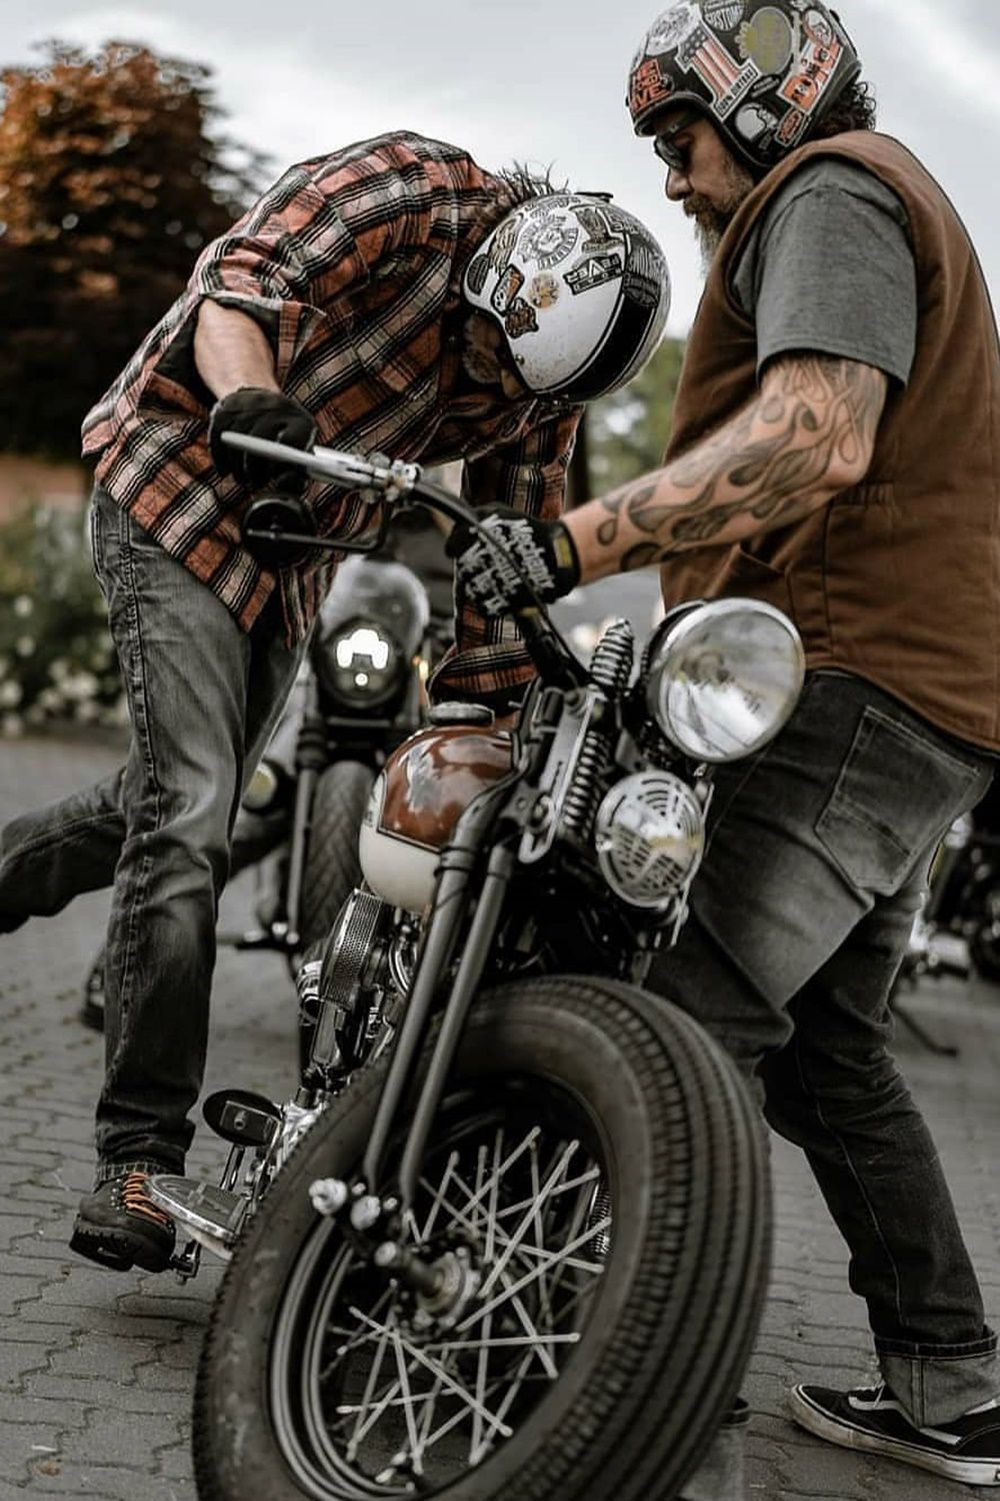 Riders and vintage motorcycles